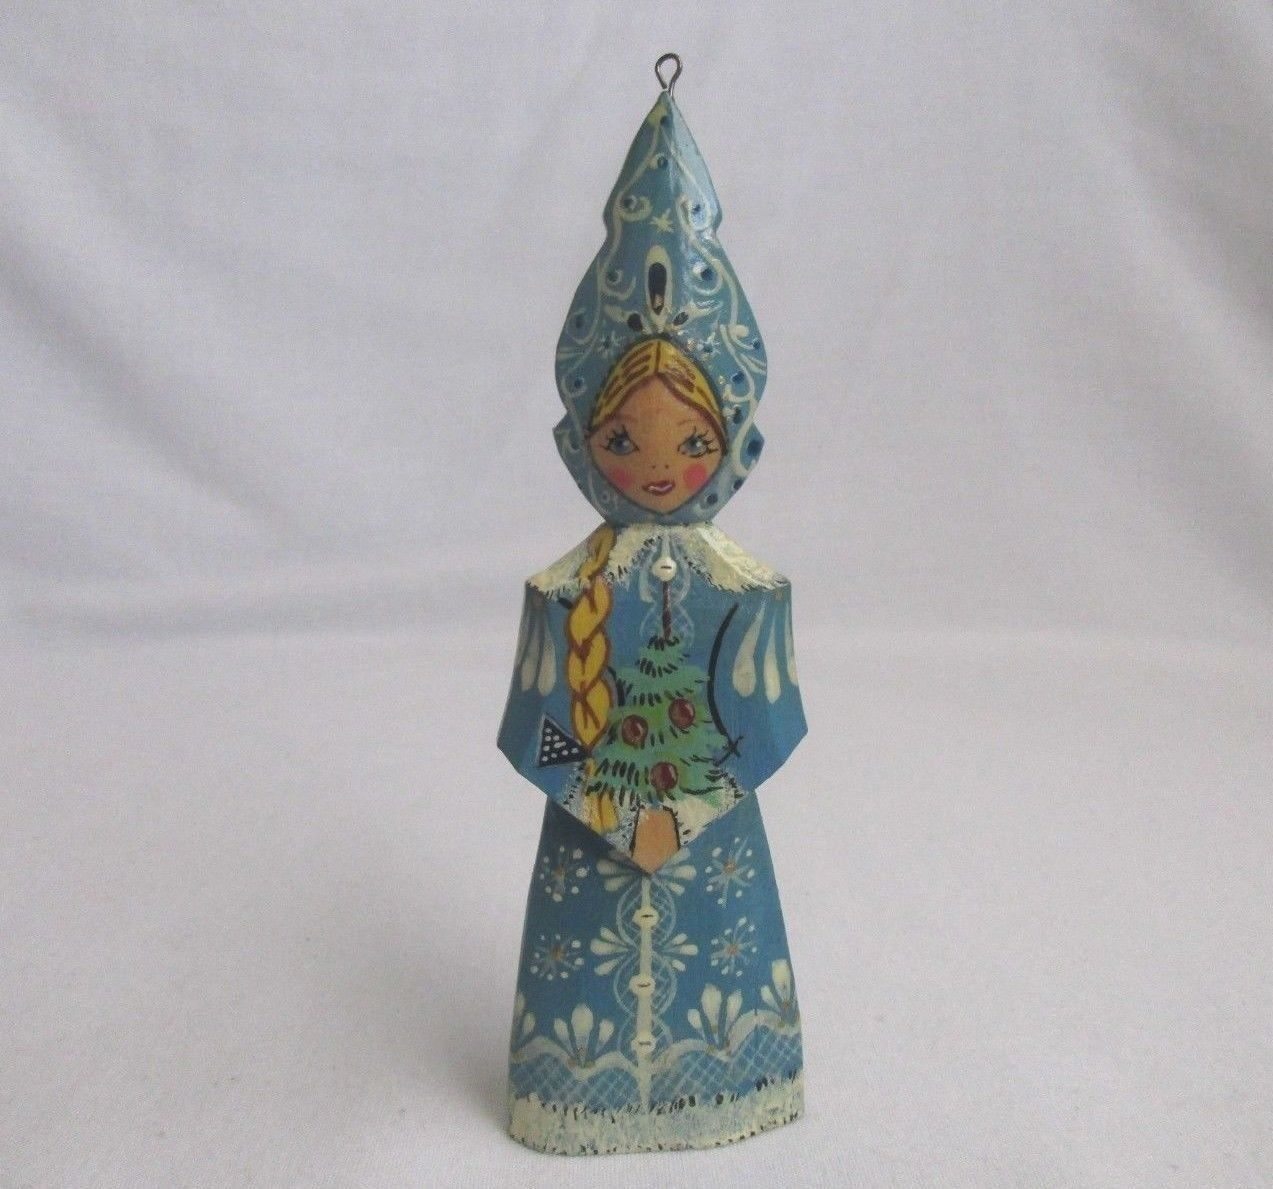 Vintage-Russian-Girl-Christmas-Ornament-Kokoshnik-Hand-Painted.jpg